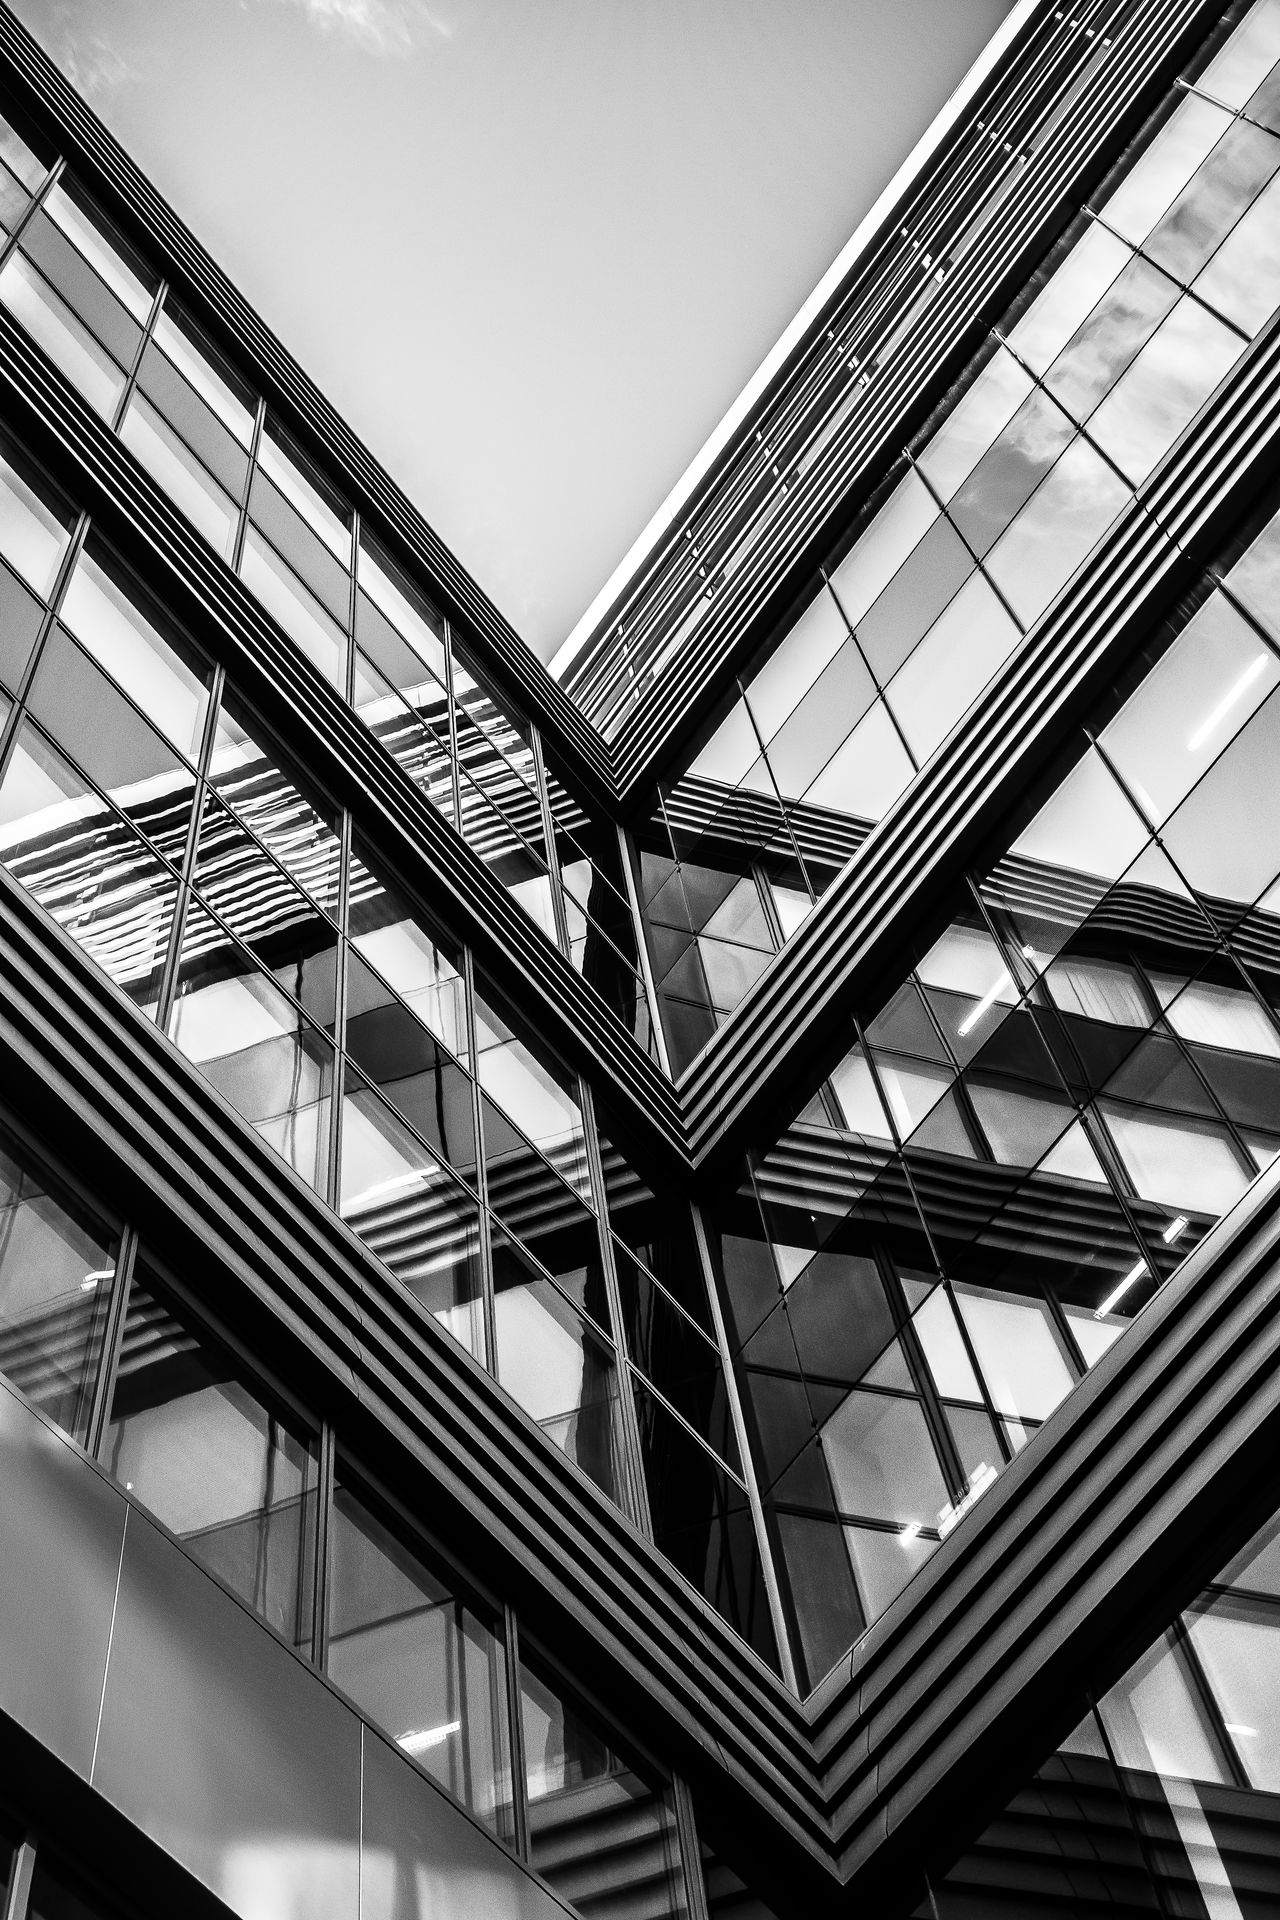 Monochrome Black And White Geometric Shapes Contrast Urban Geometry Angular Building From My Point Of View EyeEm Best Shots EyeEm Masterclass Reflections Massy Symmetry Symmetrical Abstract Pivotal Ideas Architectural Features Clear Sky TakeoverContrast